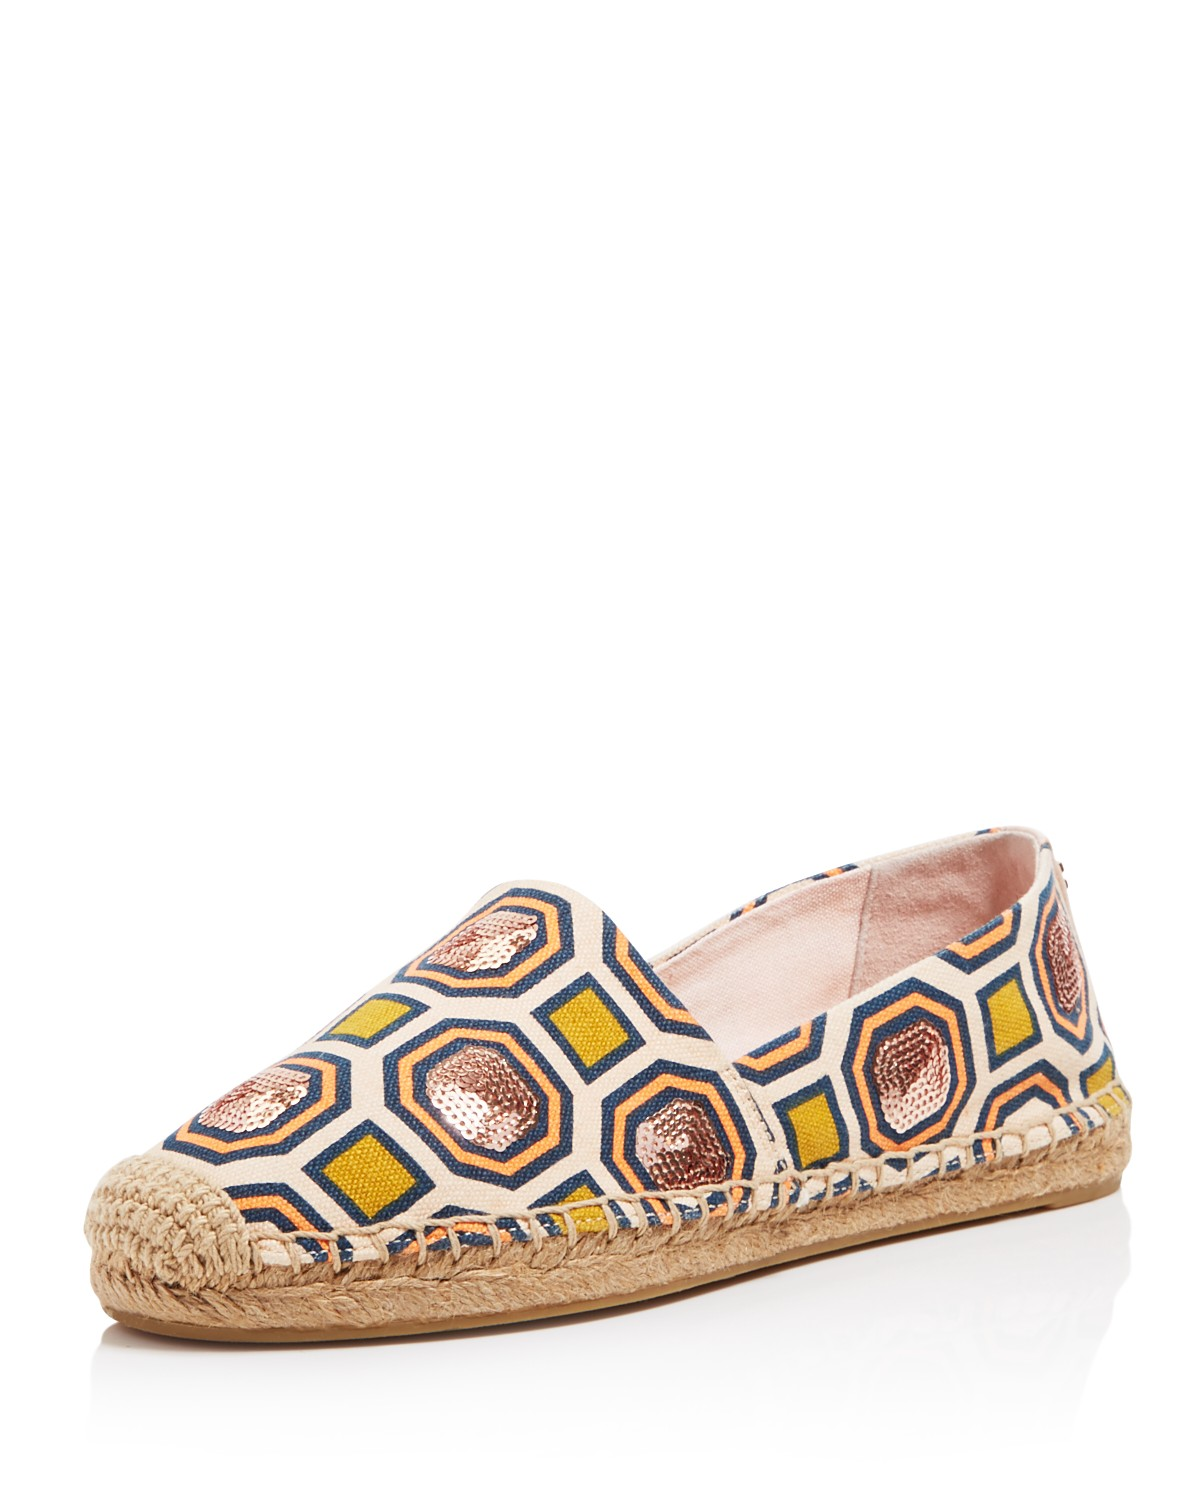 Tory Burch Women's Cecily Embellished Espadrilles QhkGxNR